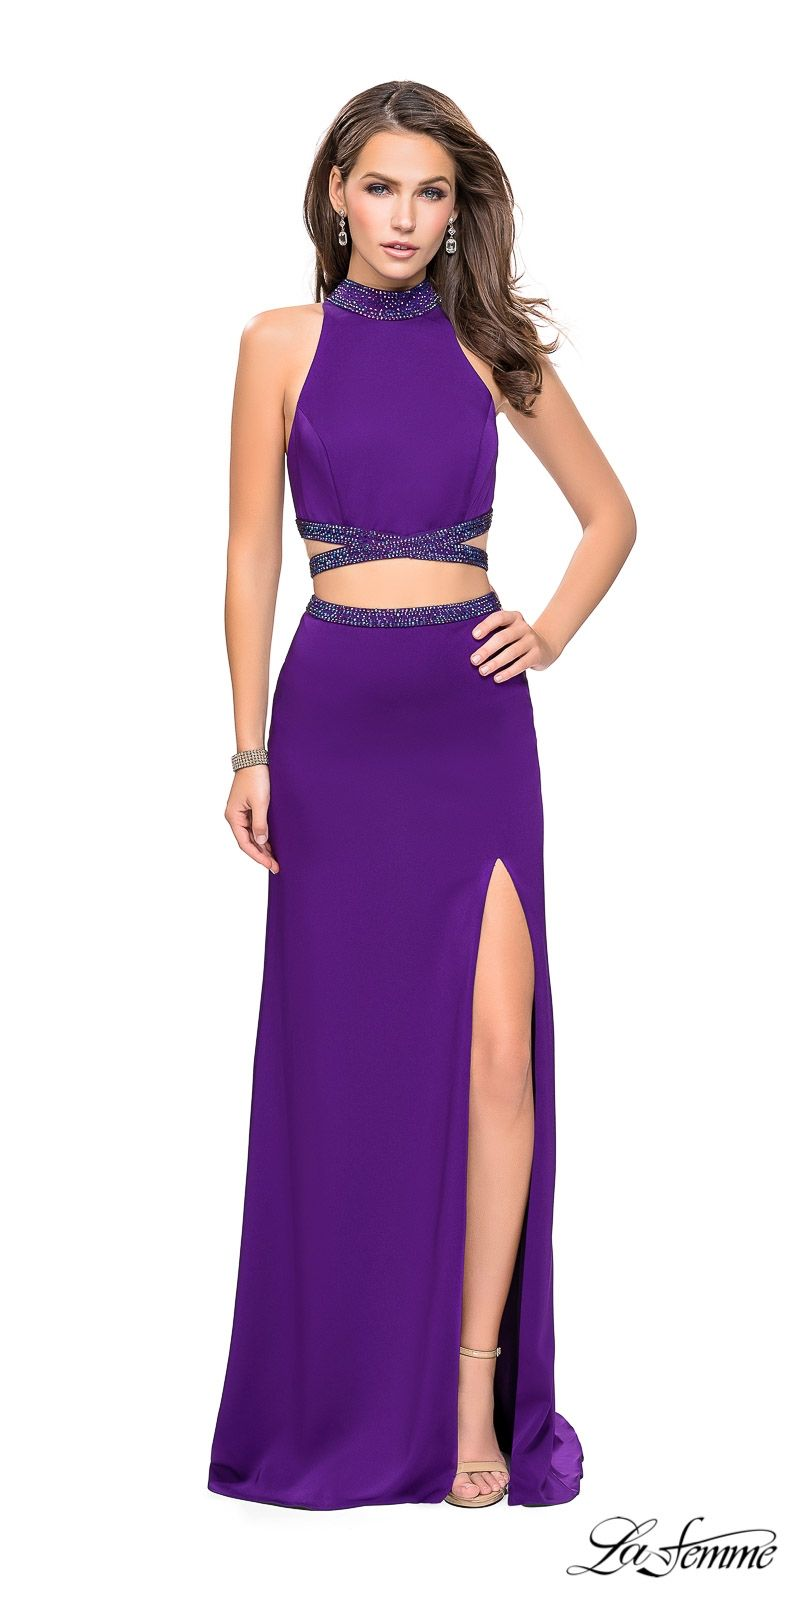 La Femme Two Piece High Neck Beaded Cutout Column Prom Dress